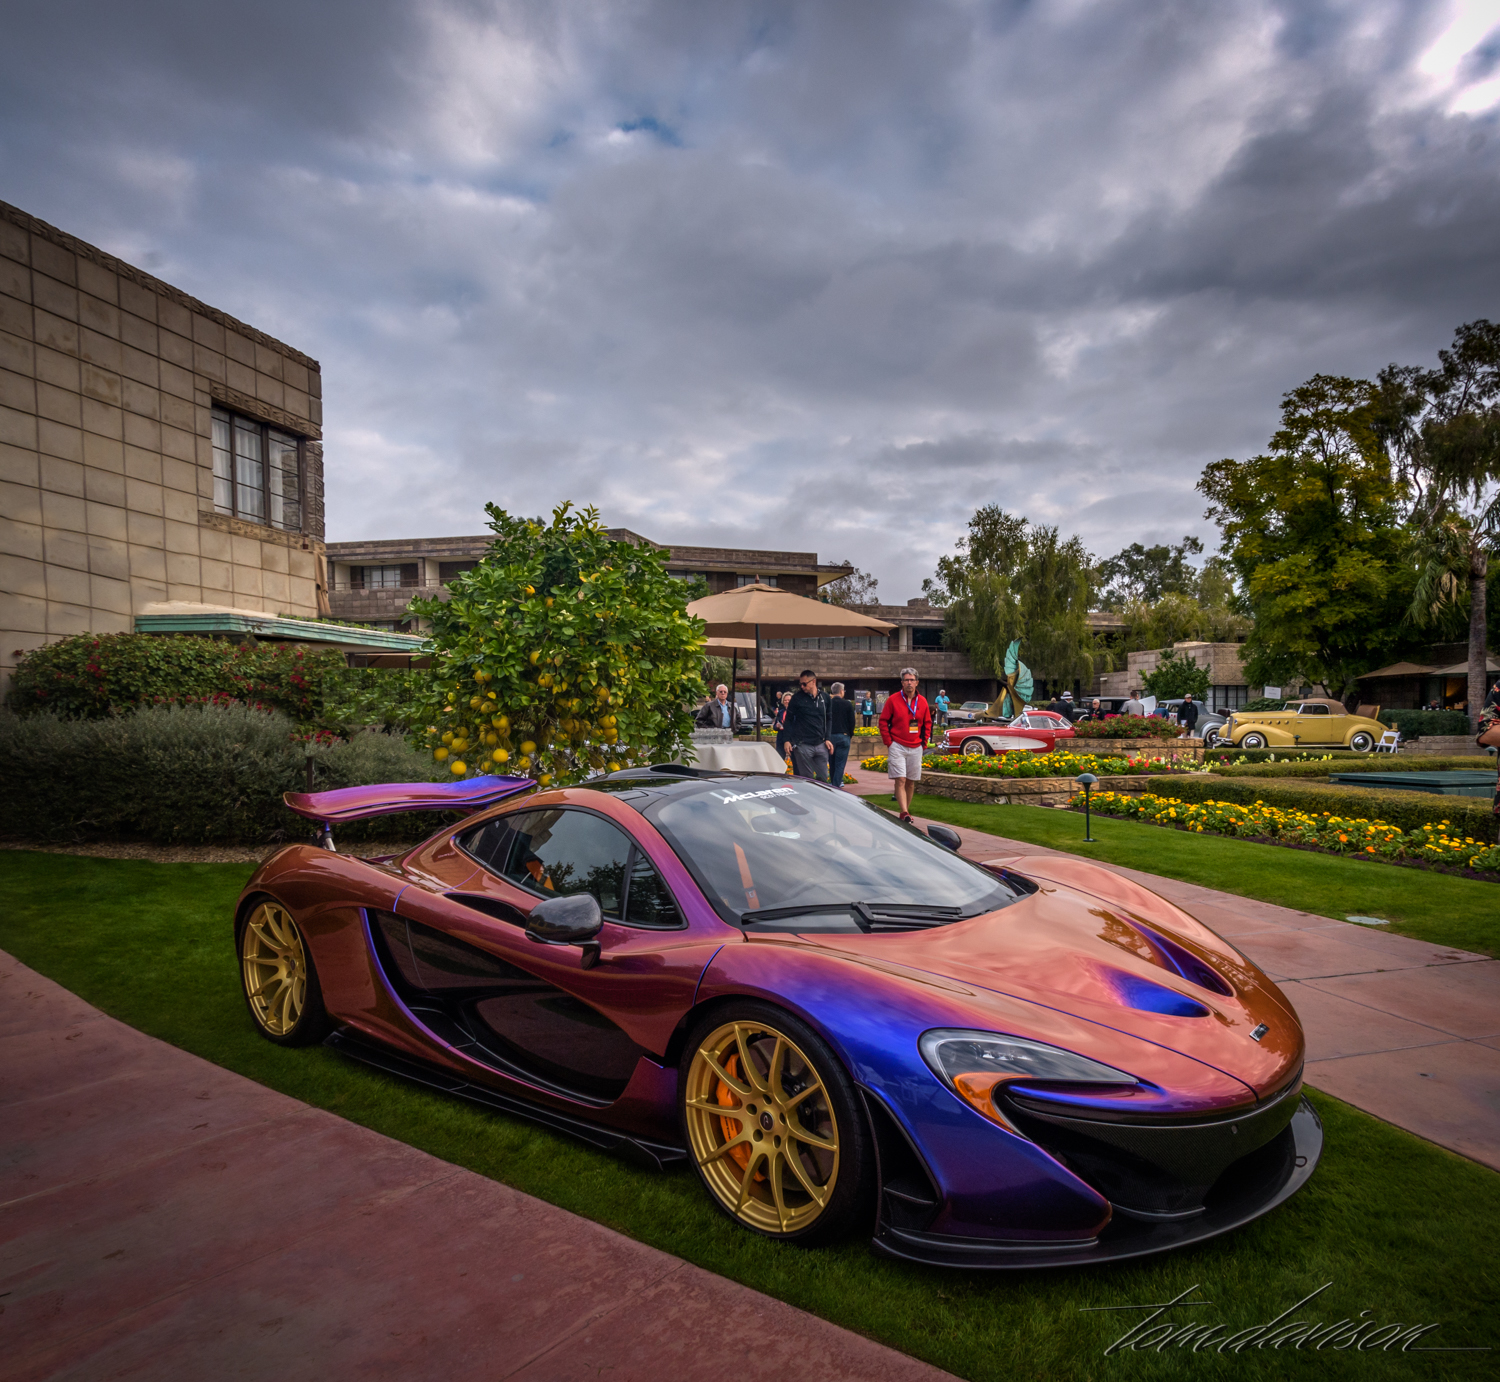 New model McLaren supercar with color changing paint.